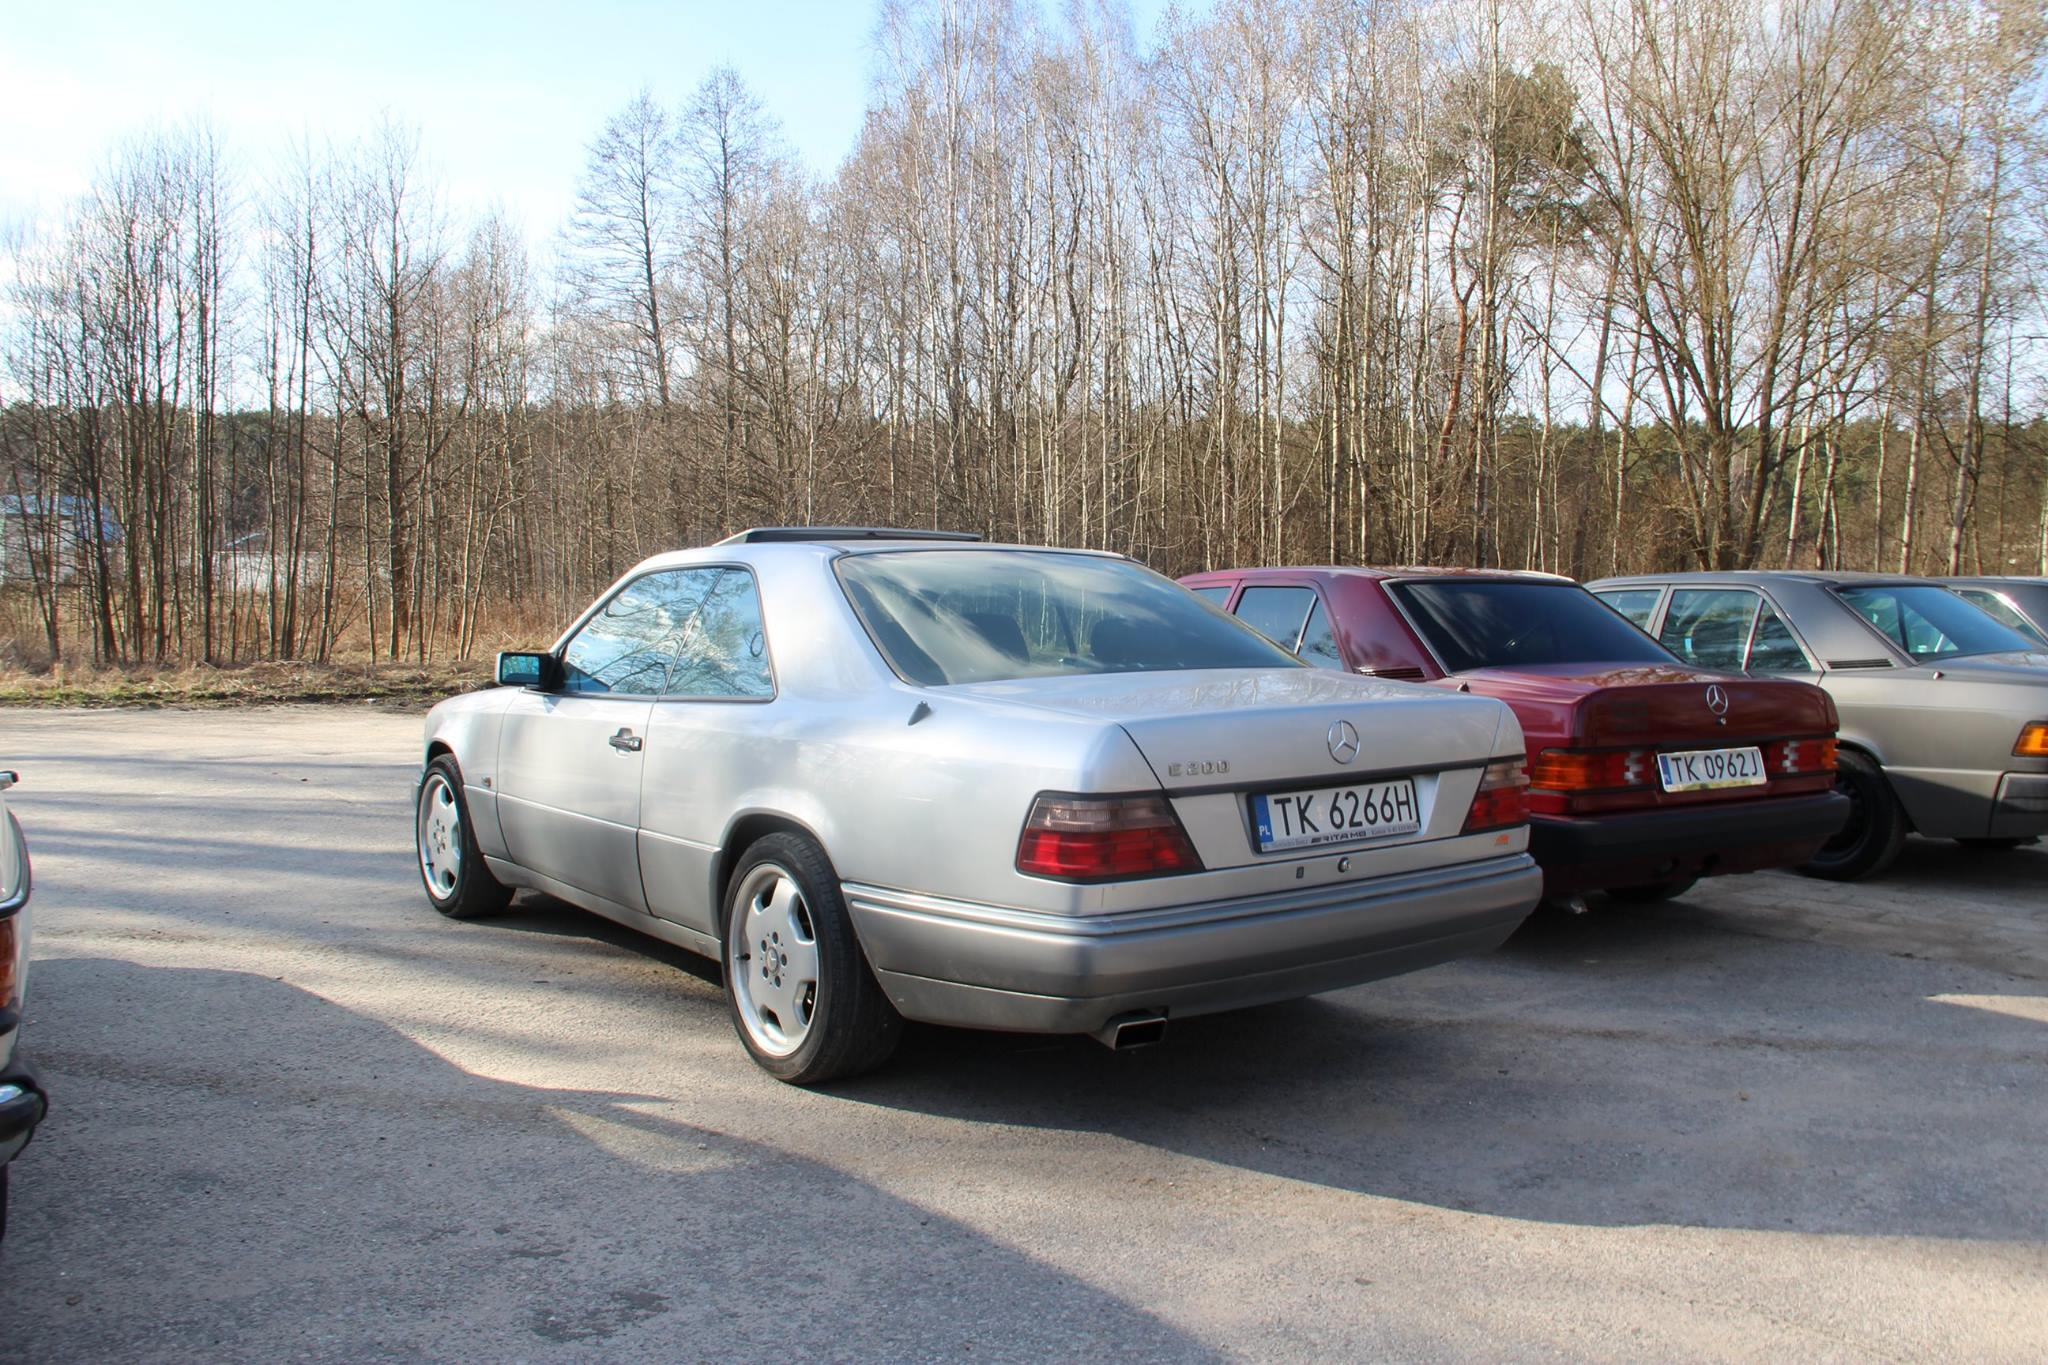 http://124coupe.pl/hosting/images/1108063764.jpg